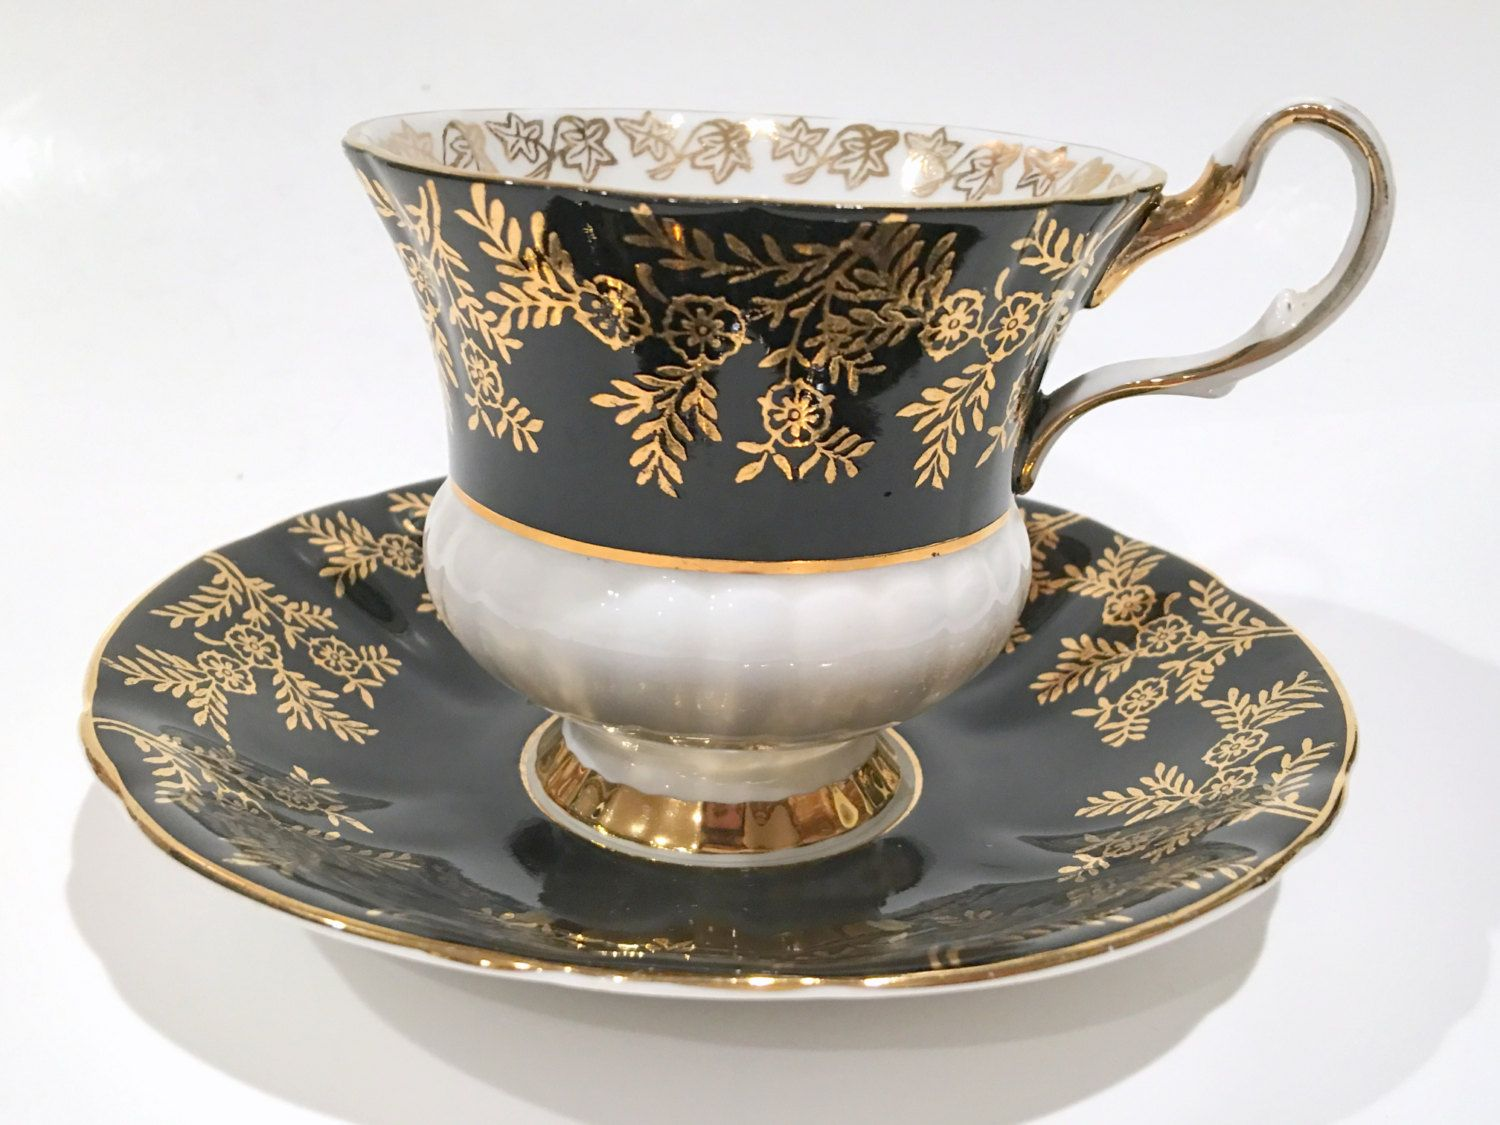 Royal albert bone china tea cup amp saucer winsome pattern ebay - Society Tea Cup And Saucer Black White Tea Cups Tea Set Bone China Cups Tea Party Antique Teacups Black Gold Cups Vintage Tea Cups